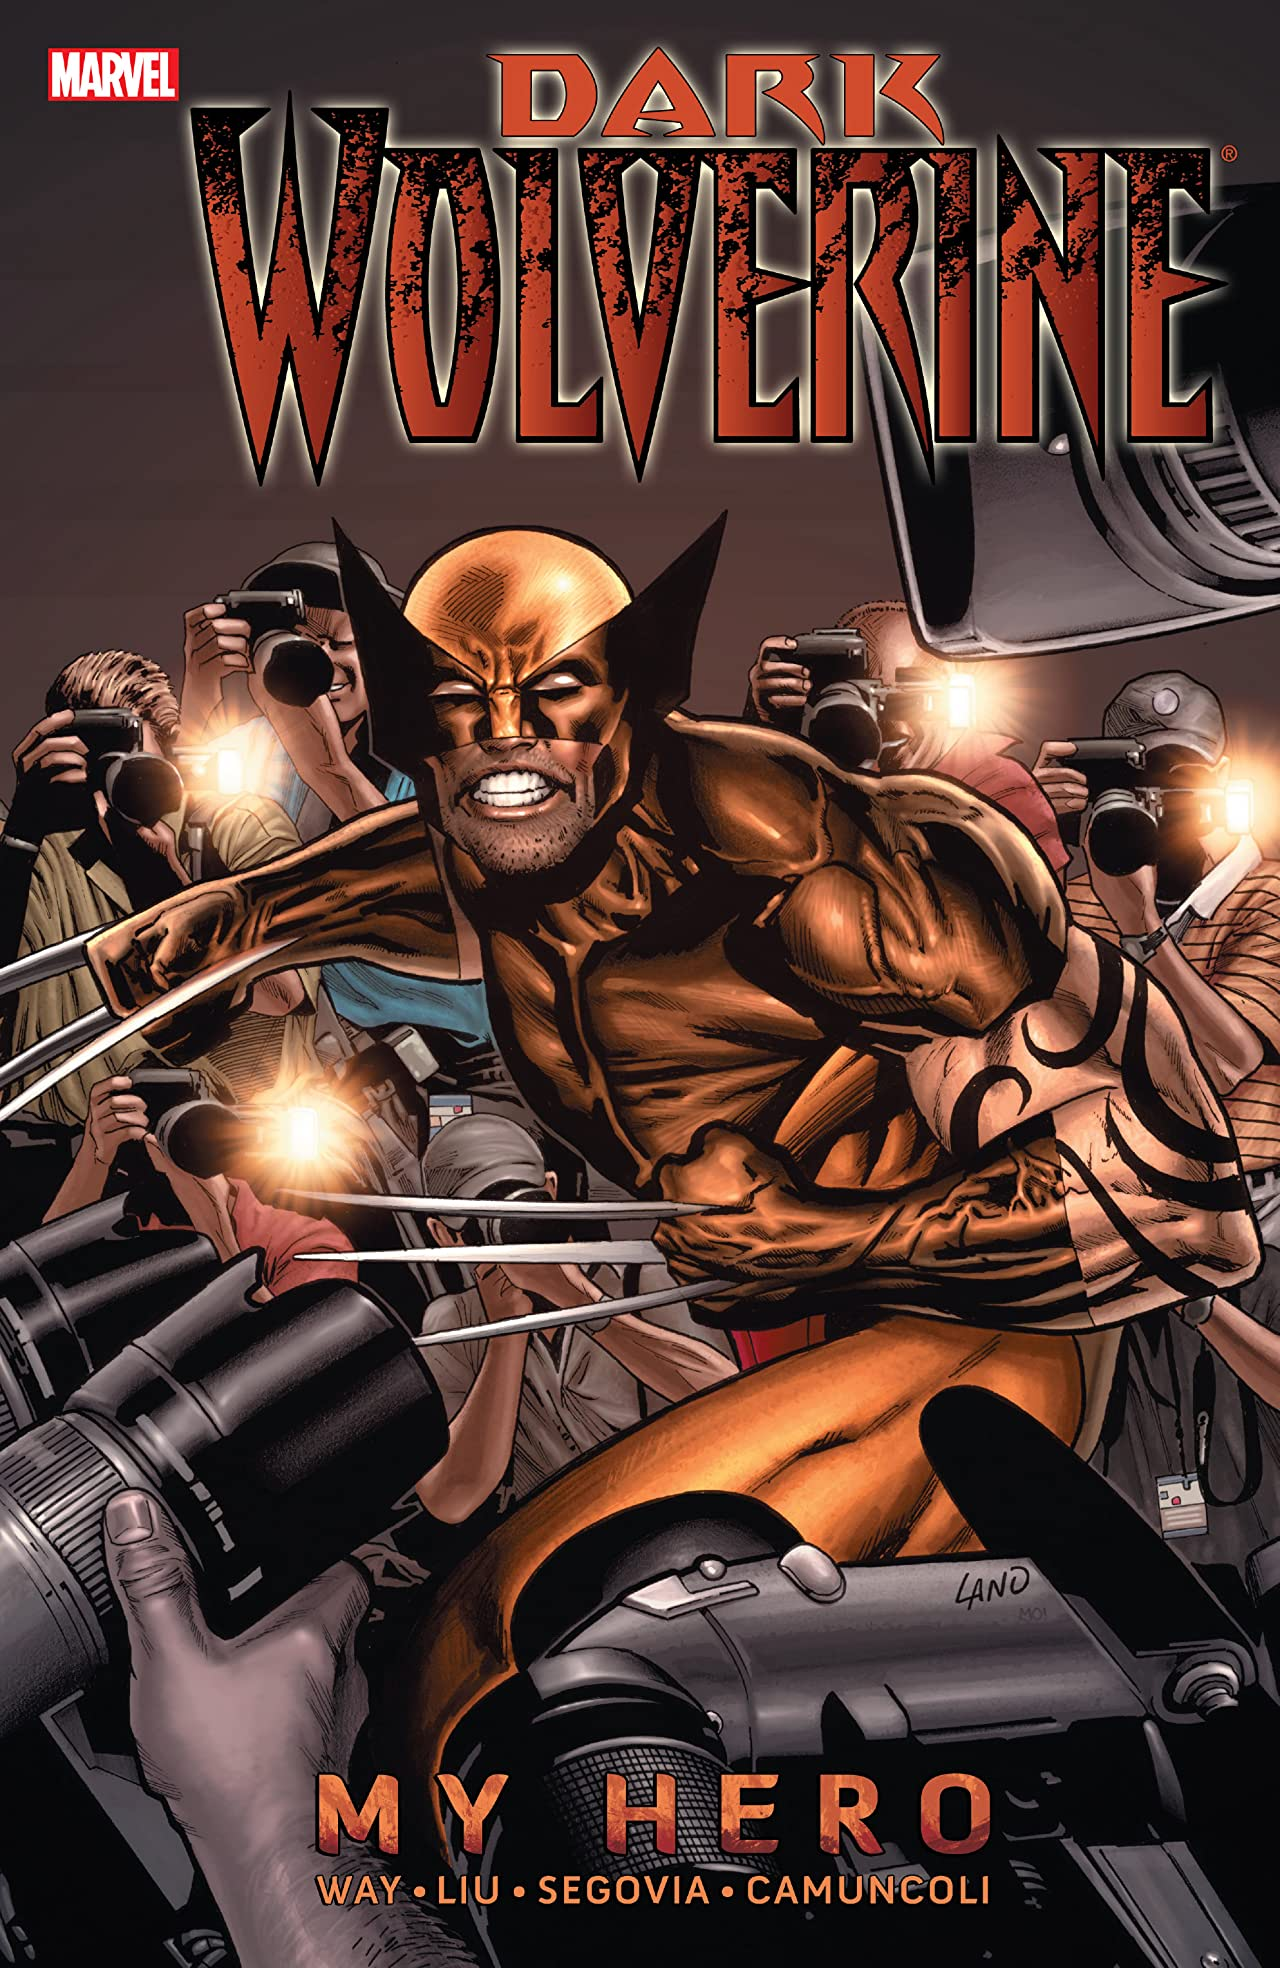 Wolverine: Dark Wolverine Vol. 2: My Hero